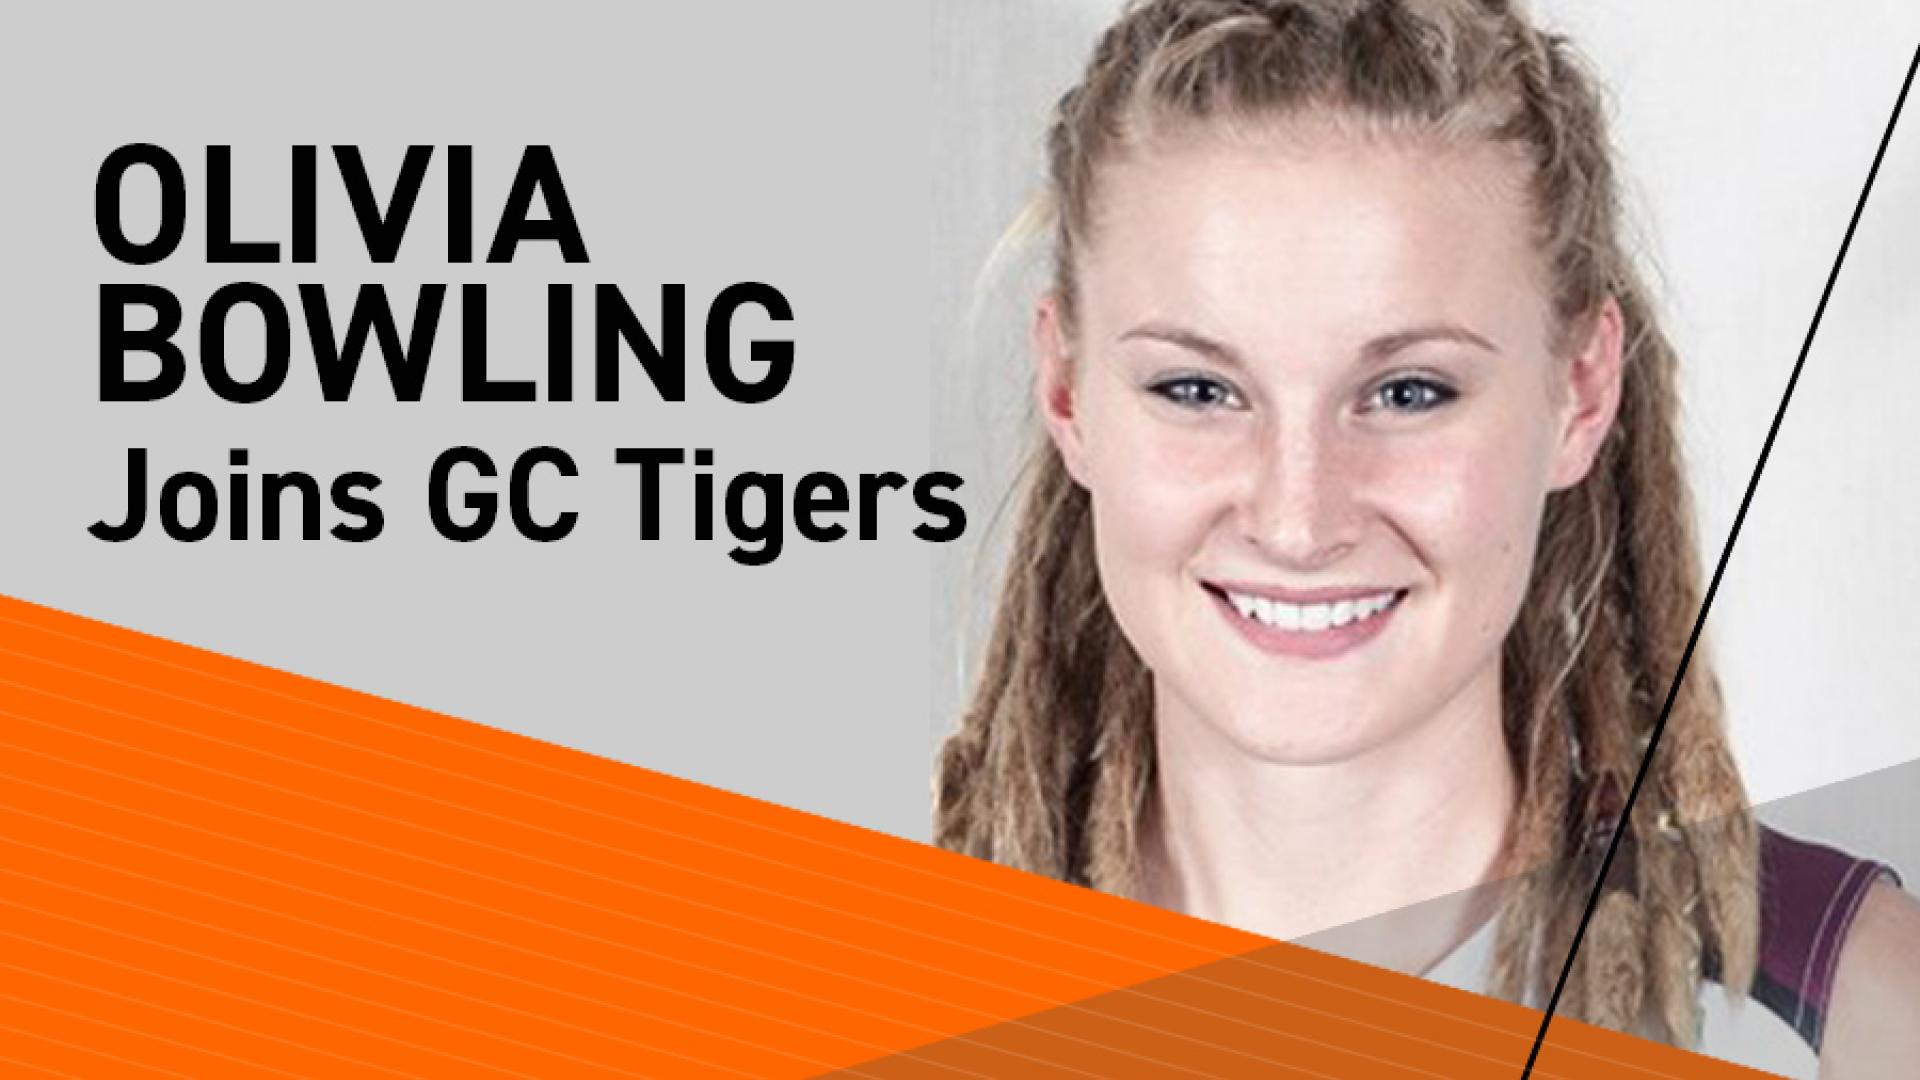 Olivia Bowling joins women's basketball team